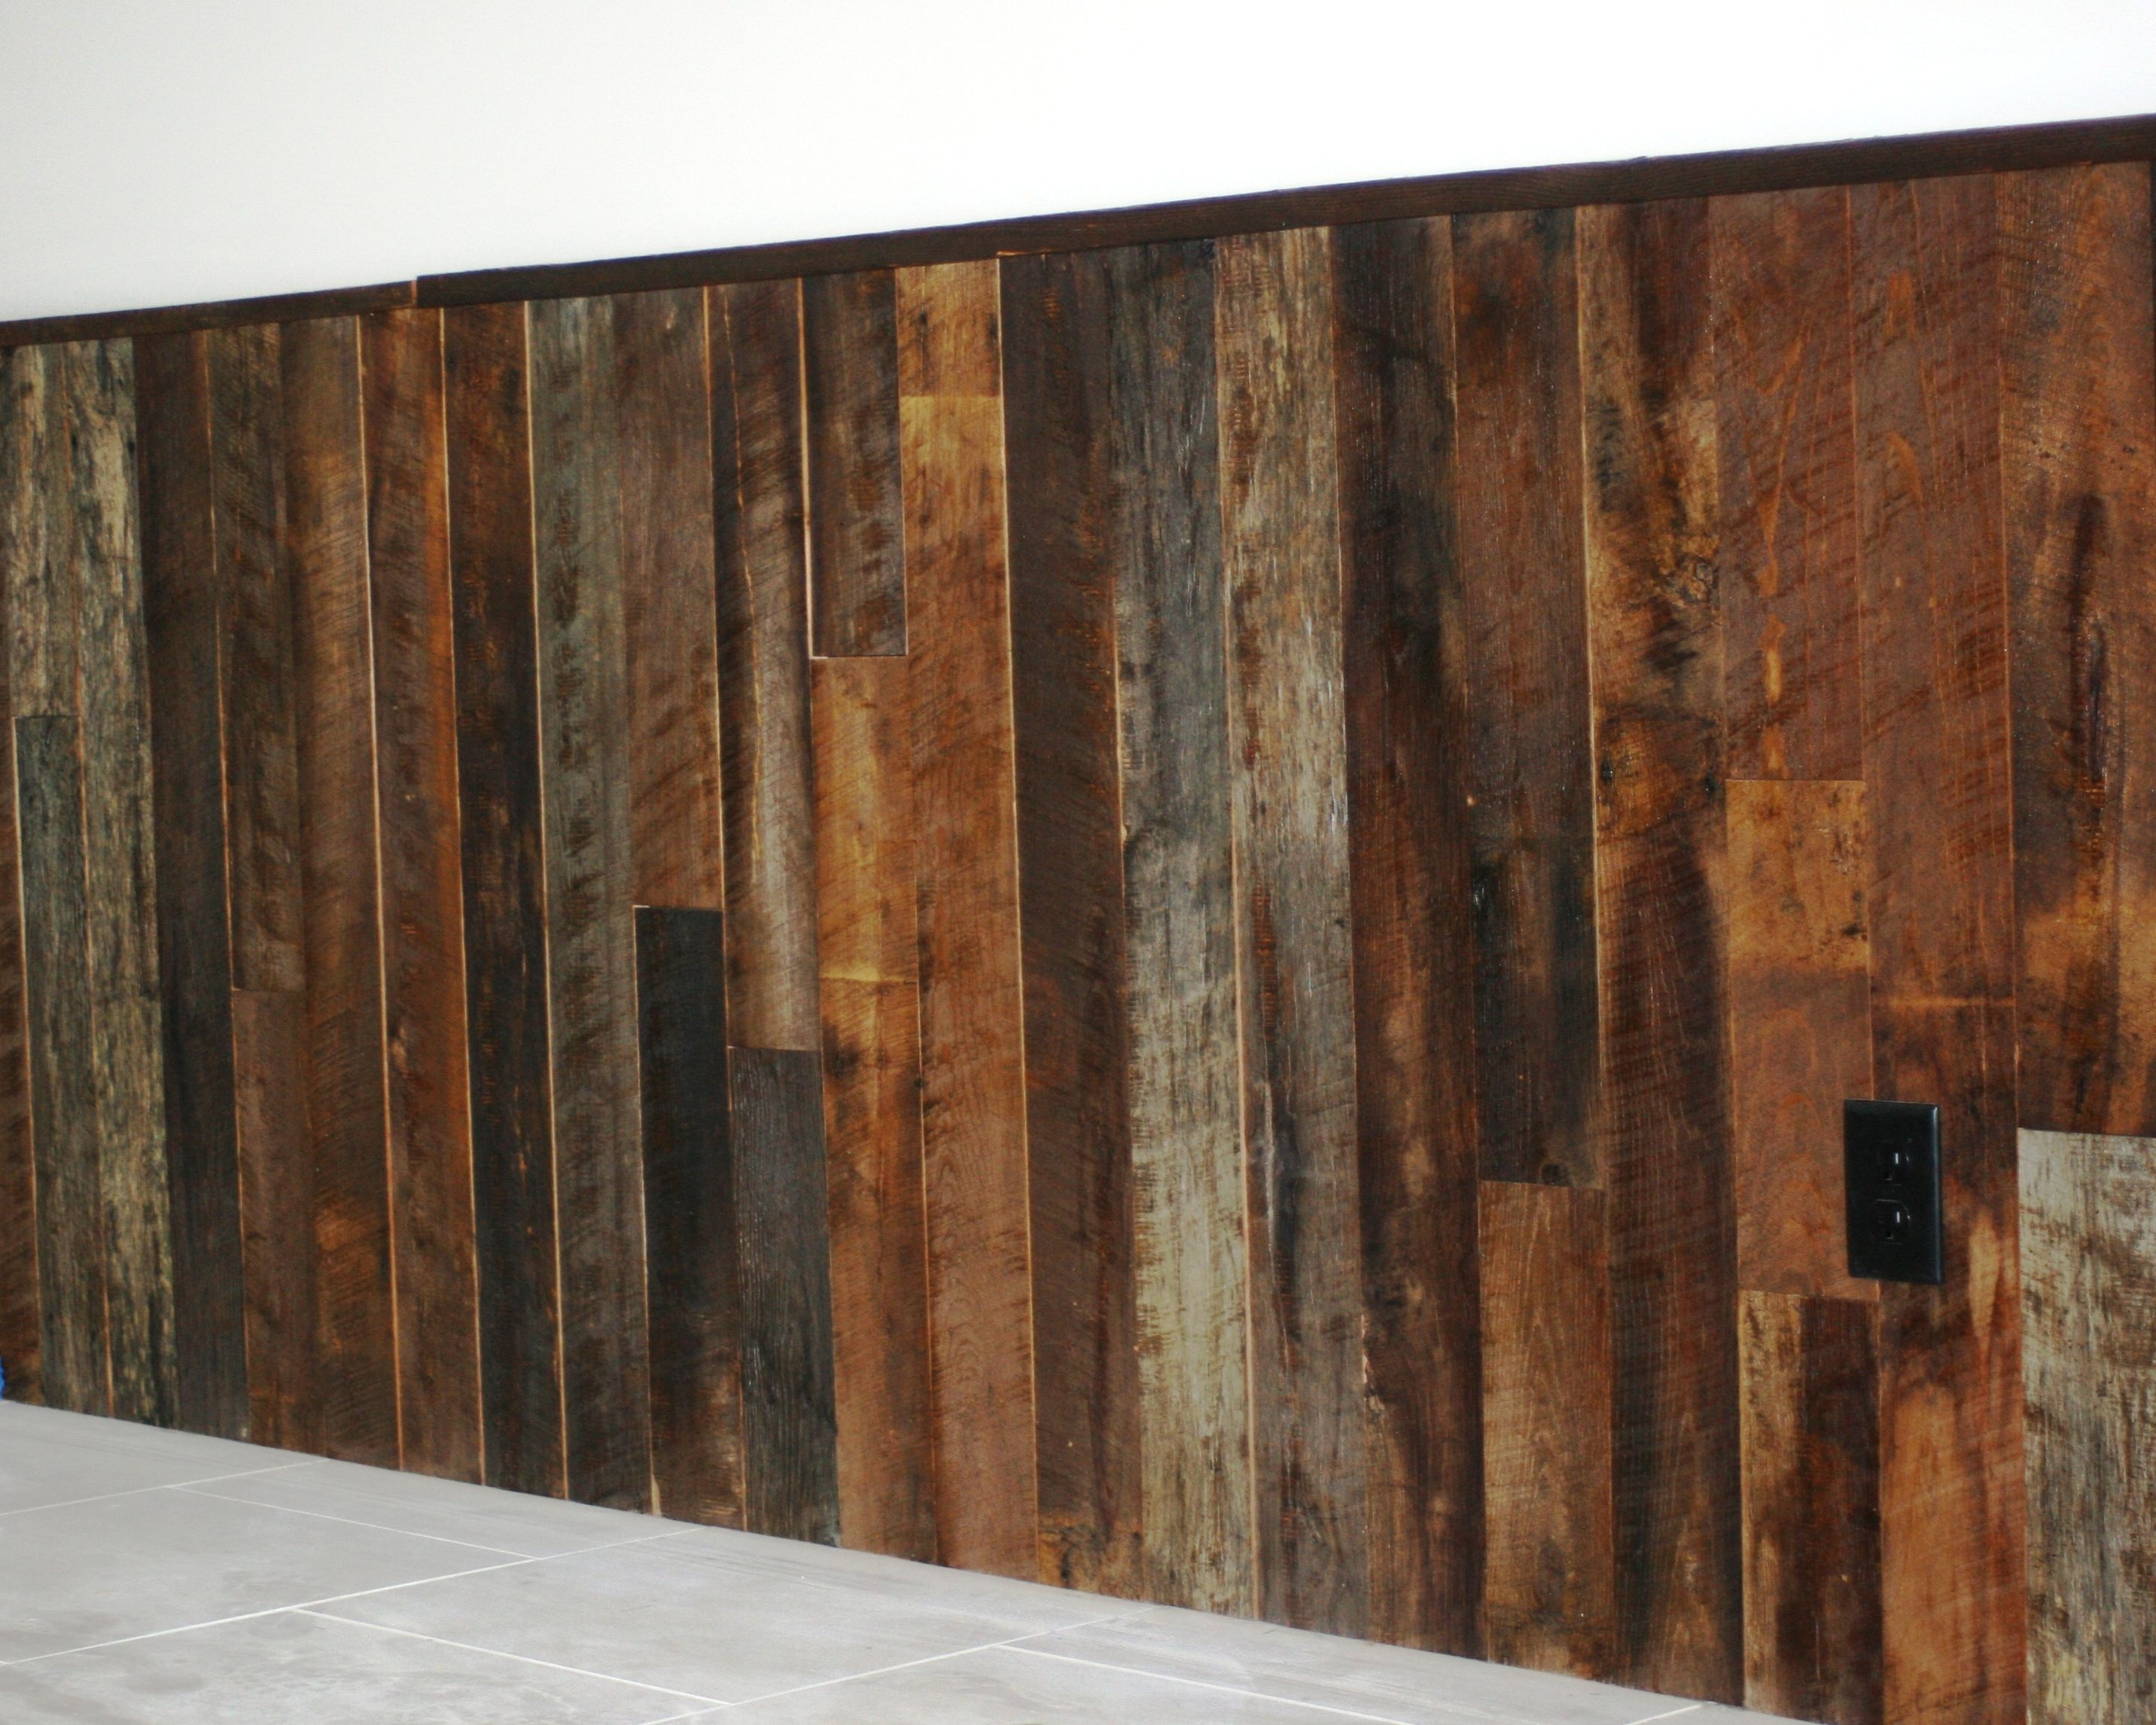 Reclaimed Pallet Wood Wainscoting Decorative Repurposed Recycled